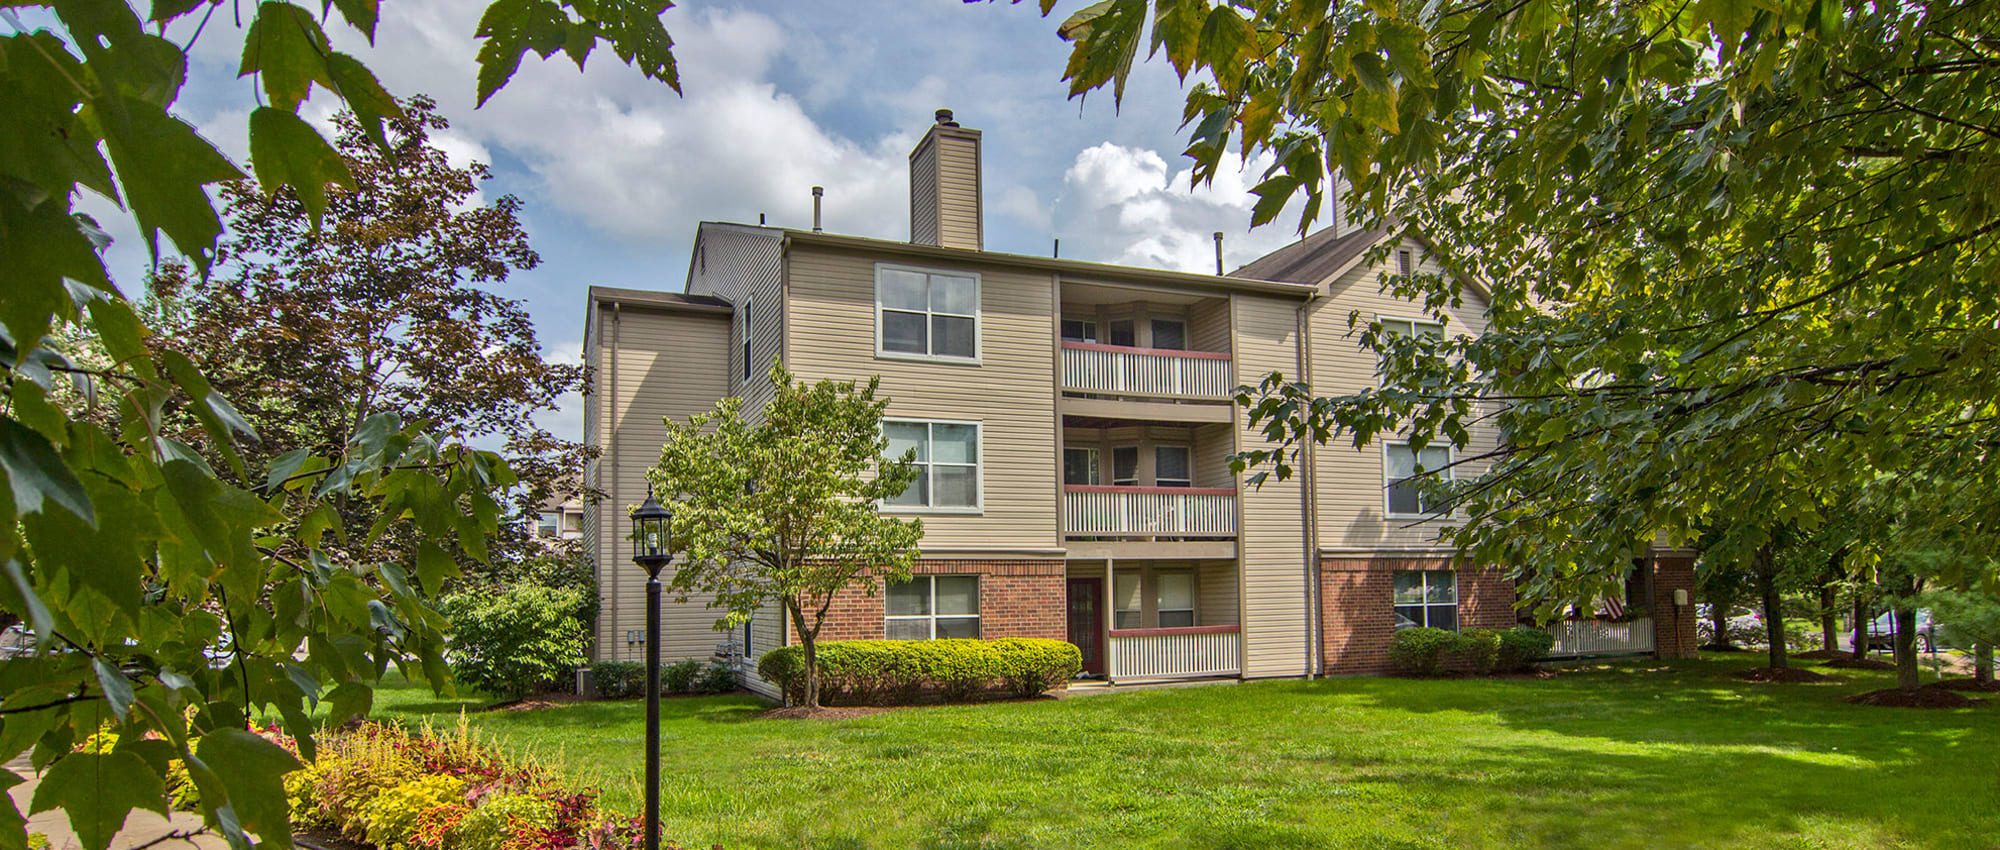 Apartments at Club at North Hills in Pittsburgh, Pennsylvania